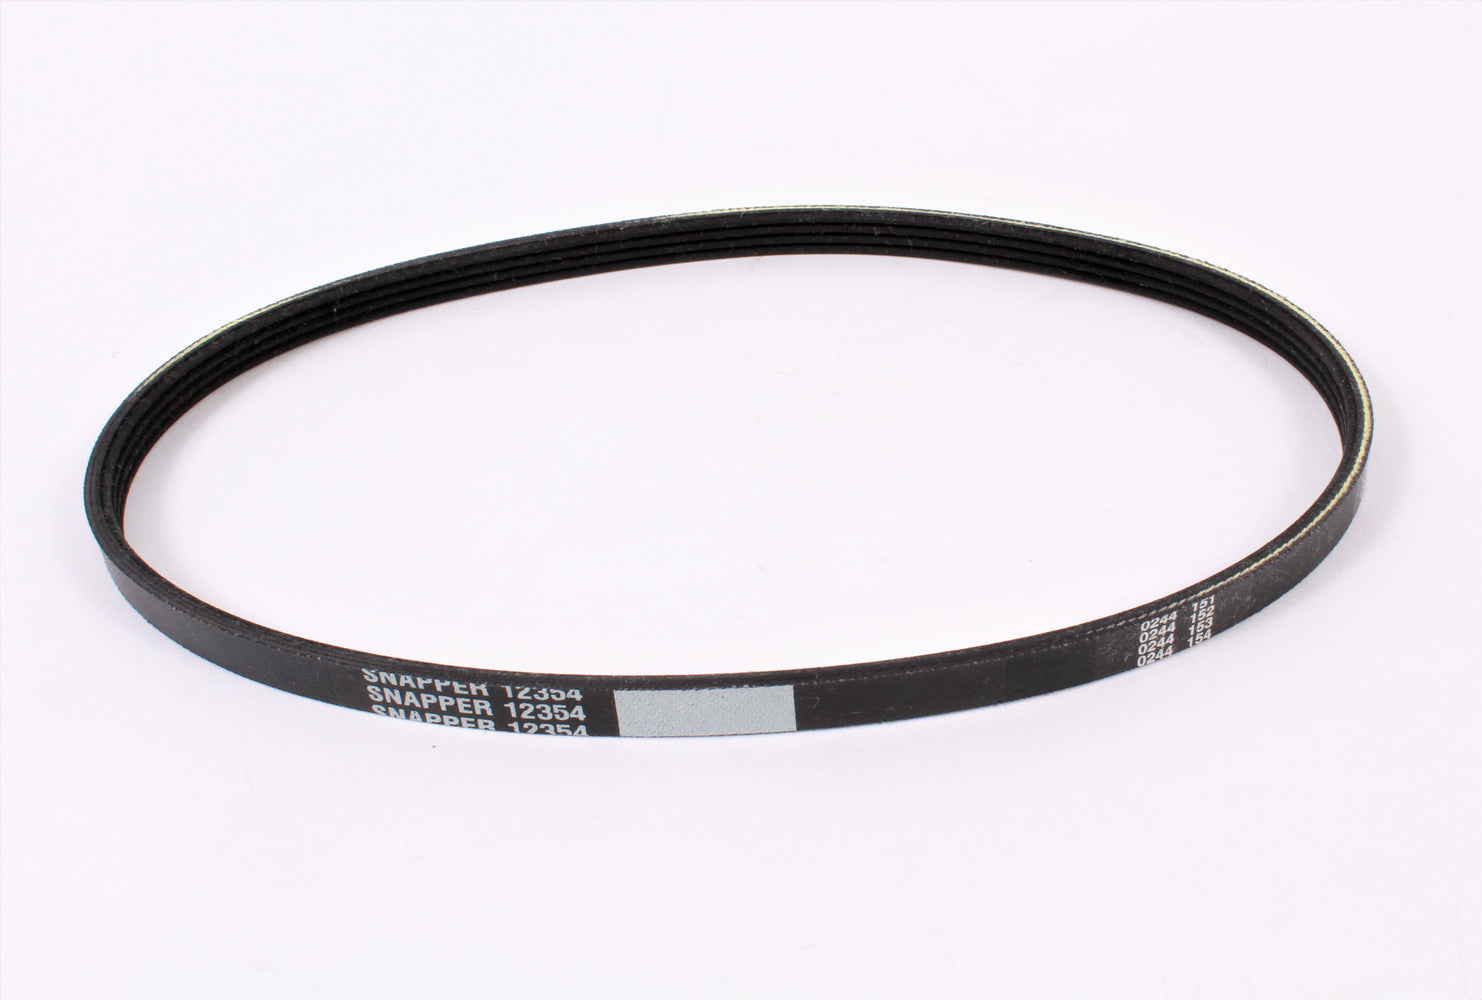 Genuine Snapper 7012354YP Multi Ribbed Mower Drive Belt Replaces 1-2354 7012354